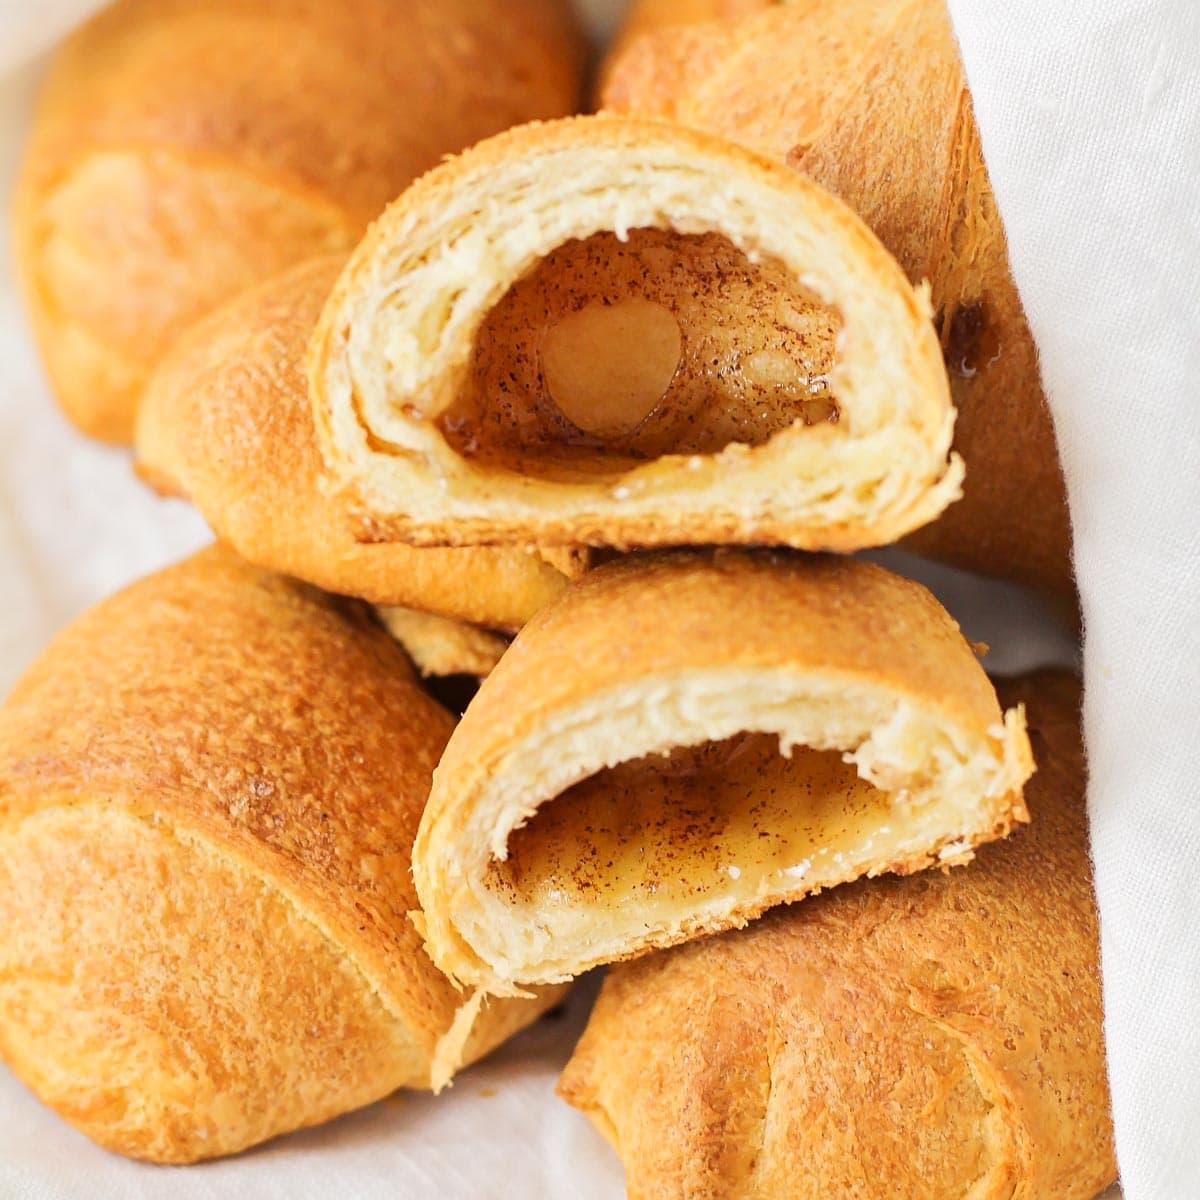 A pile of resurrection rolls with one broken in half